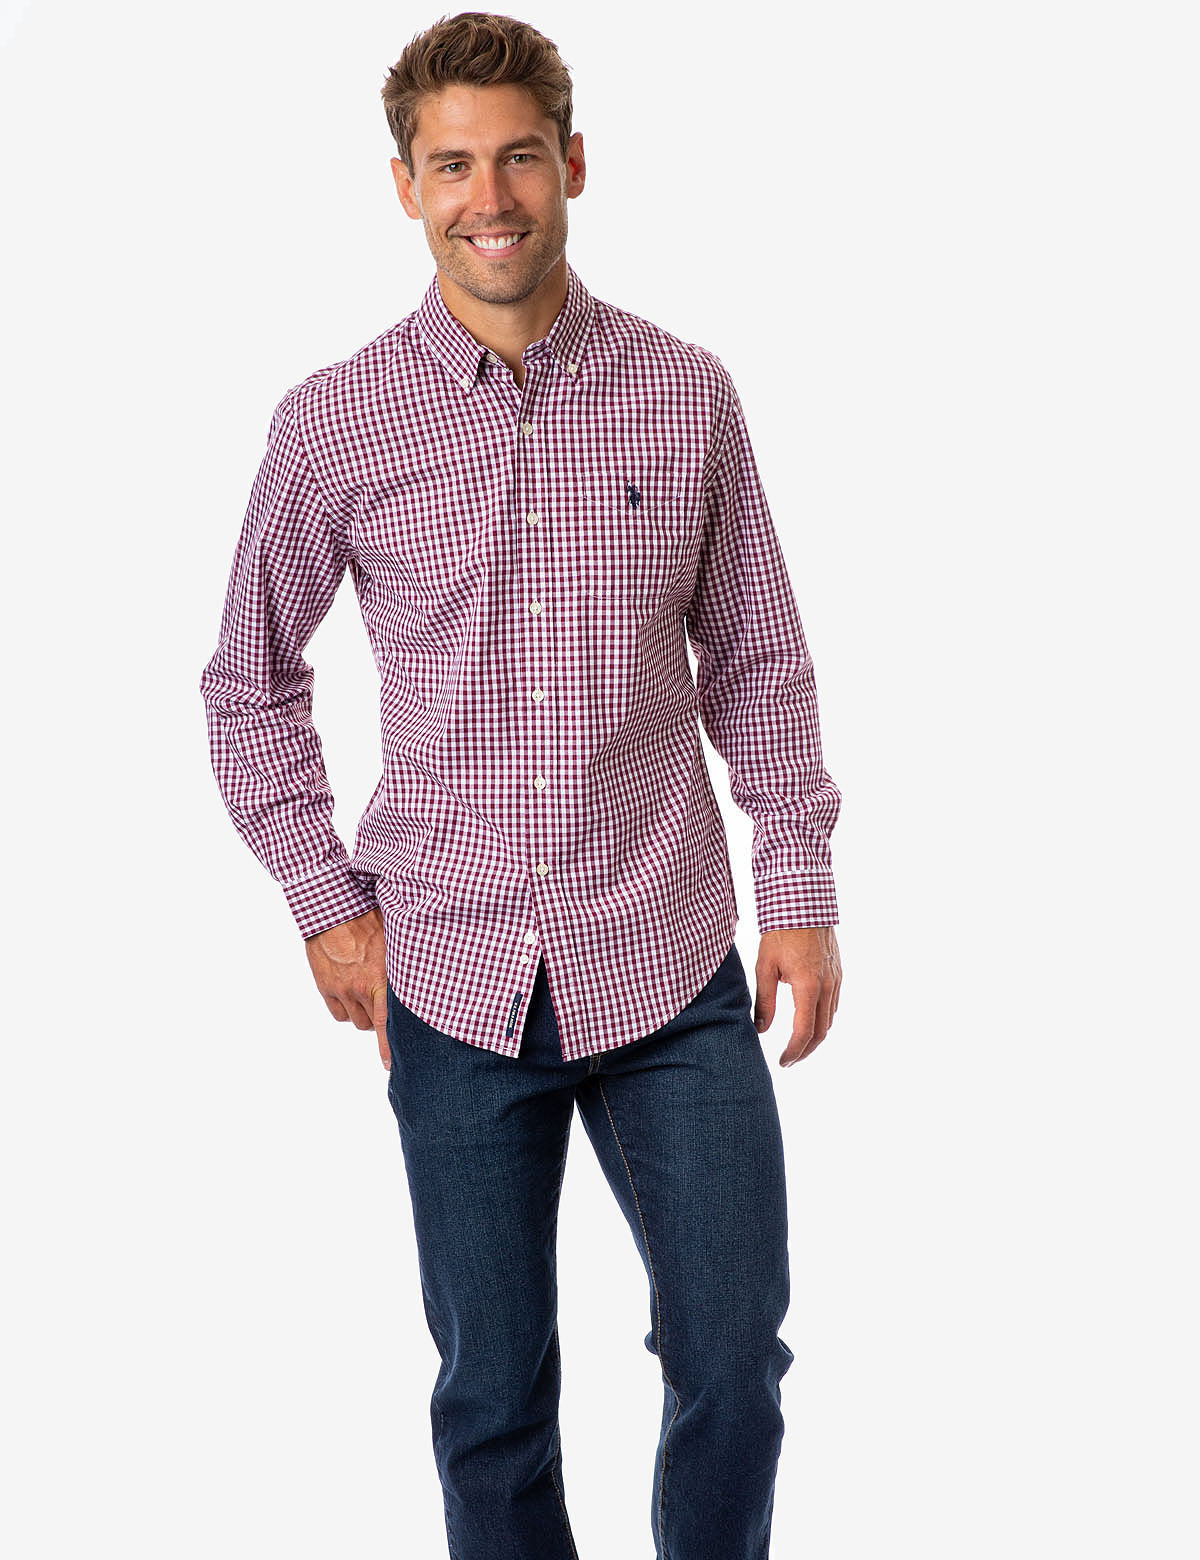 GINGHAM PLAID POPLIN SHIRT - U.S. Polo Assn.